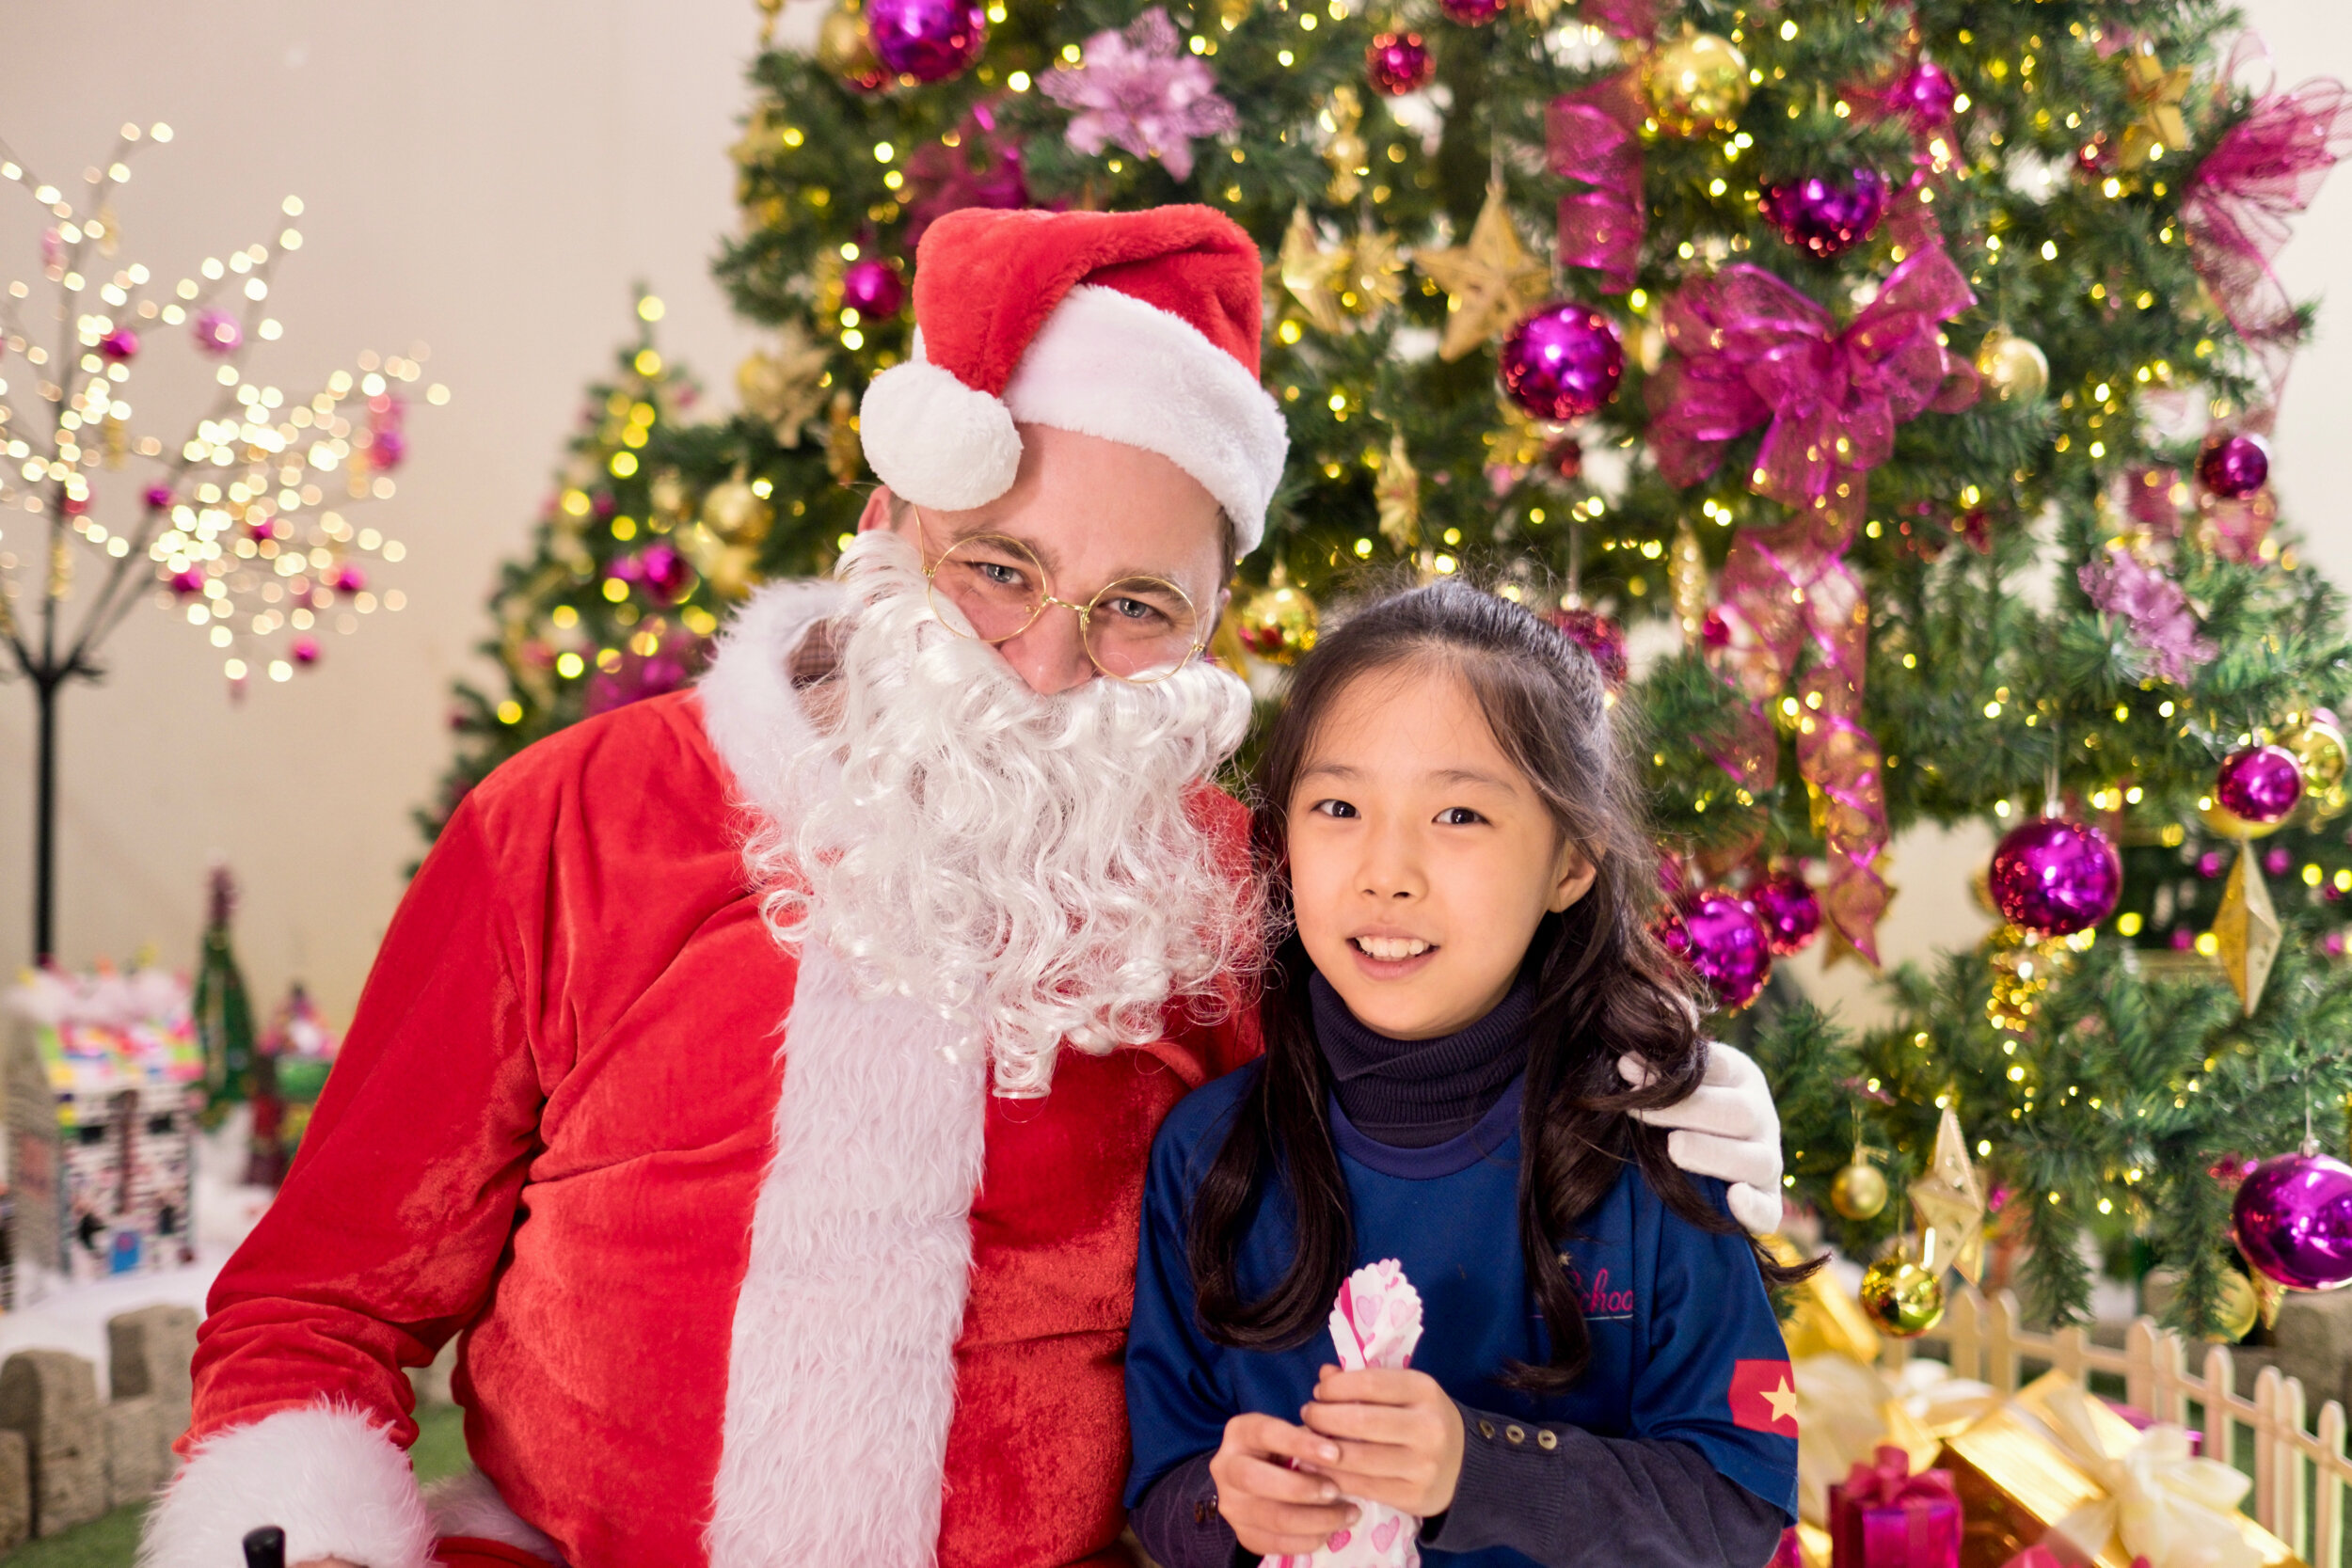 Photoshoot with Santa Clause-628.jpg